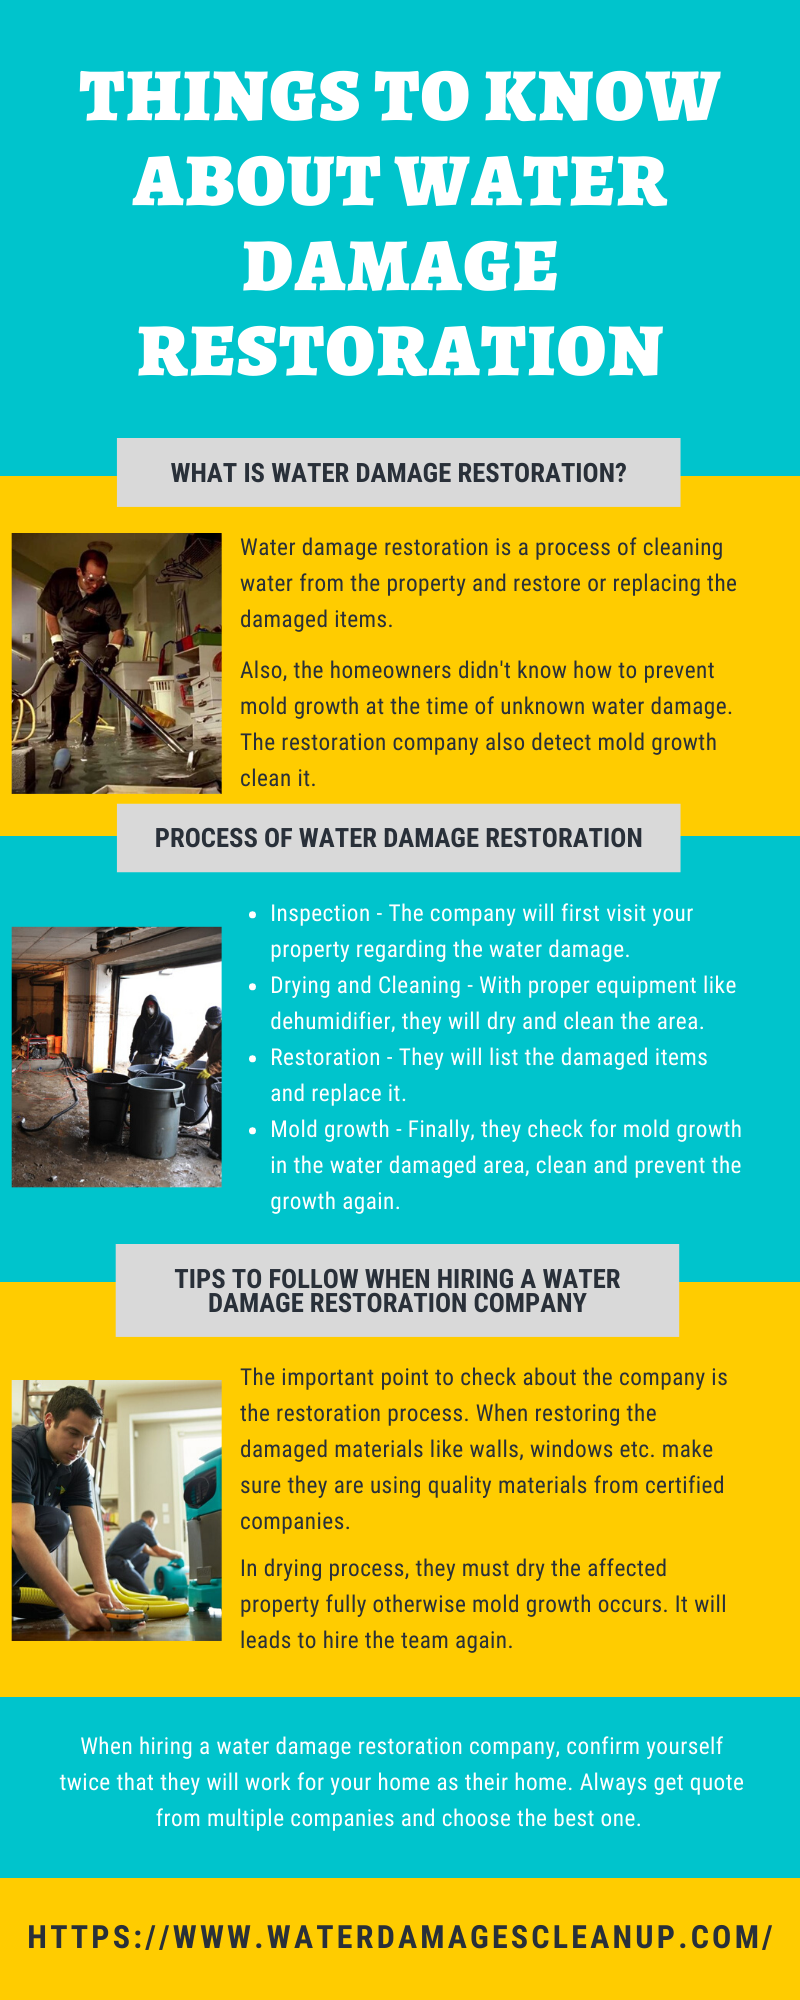 Things to Know About Water Damage Restoration